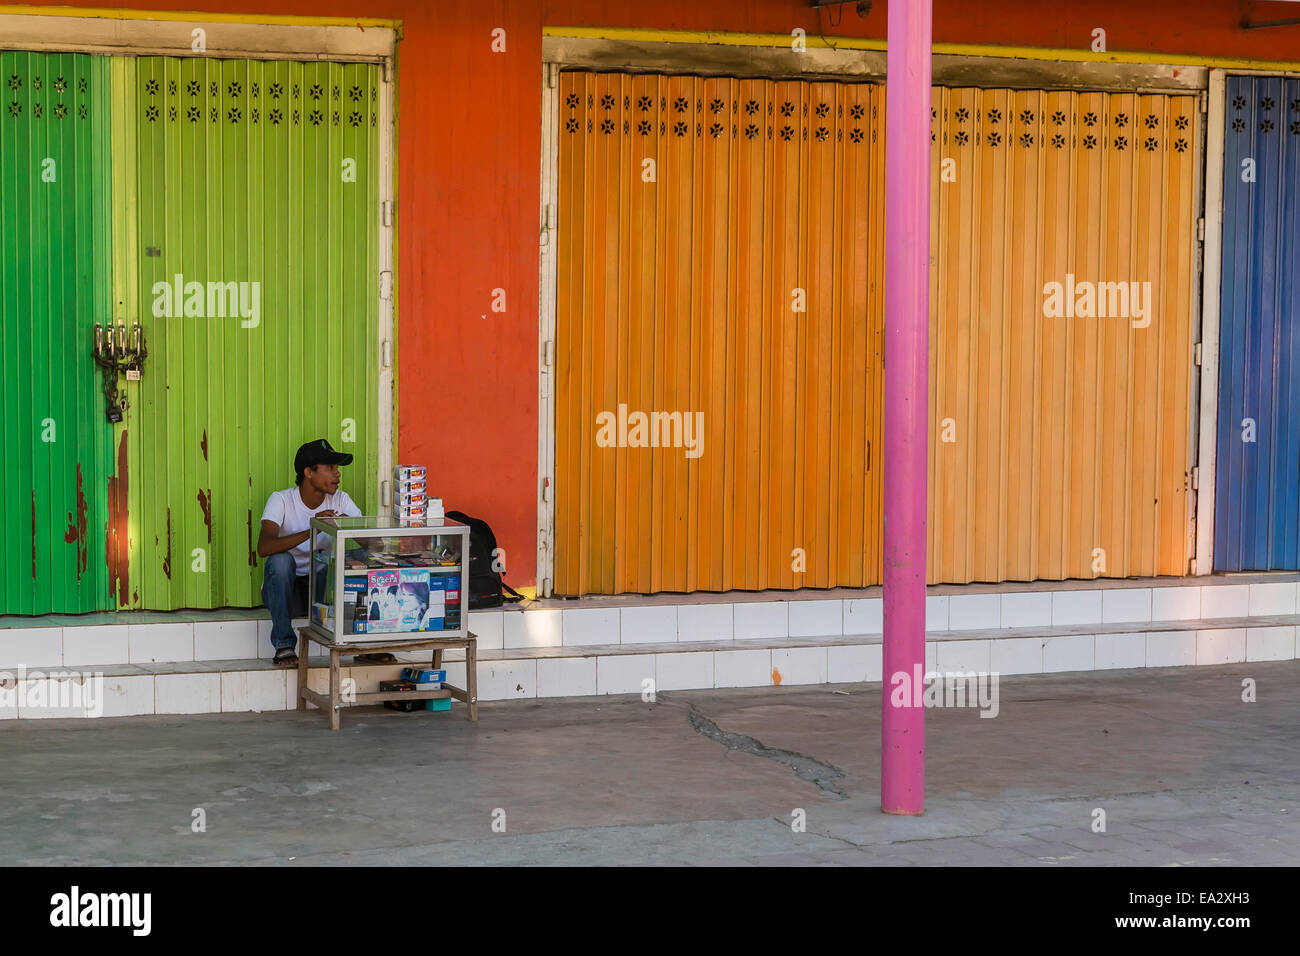 Man selling electronics from small cart in the capital city of Dili, East Timor, Southeast Asia, Asia Stock Photo